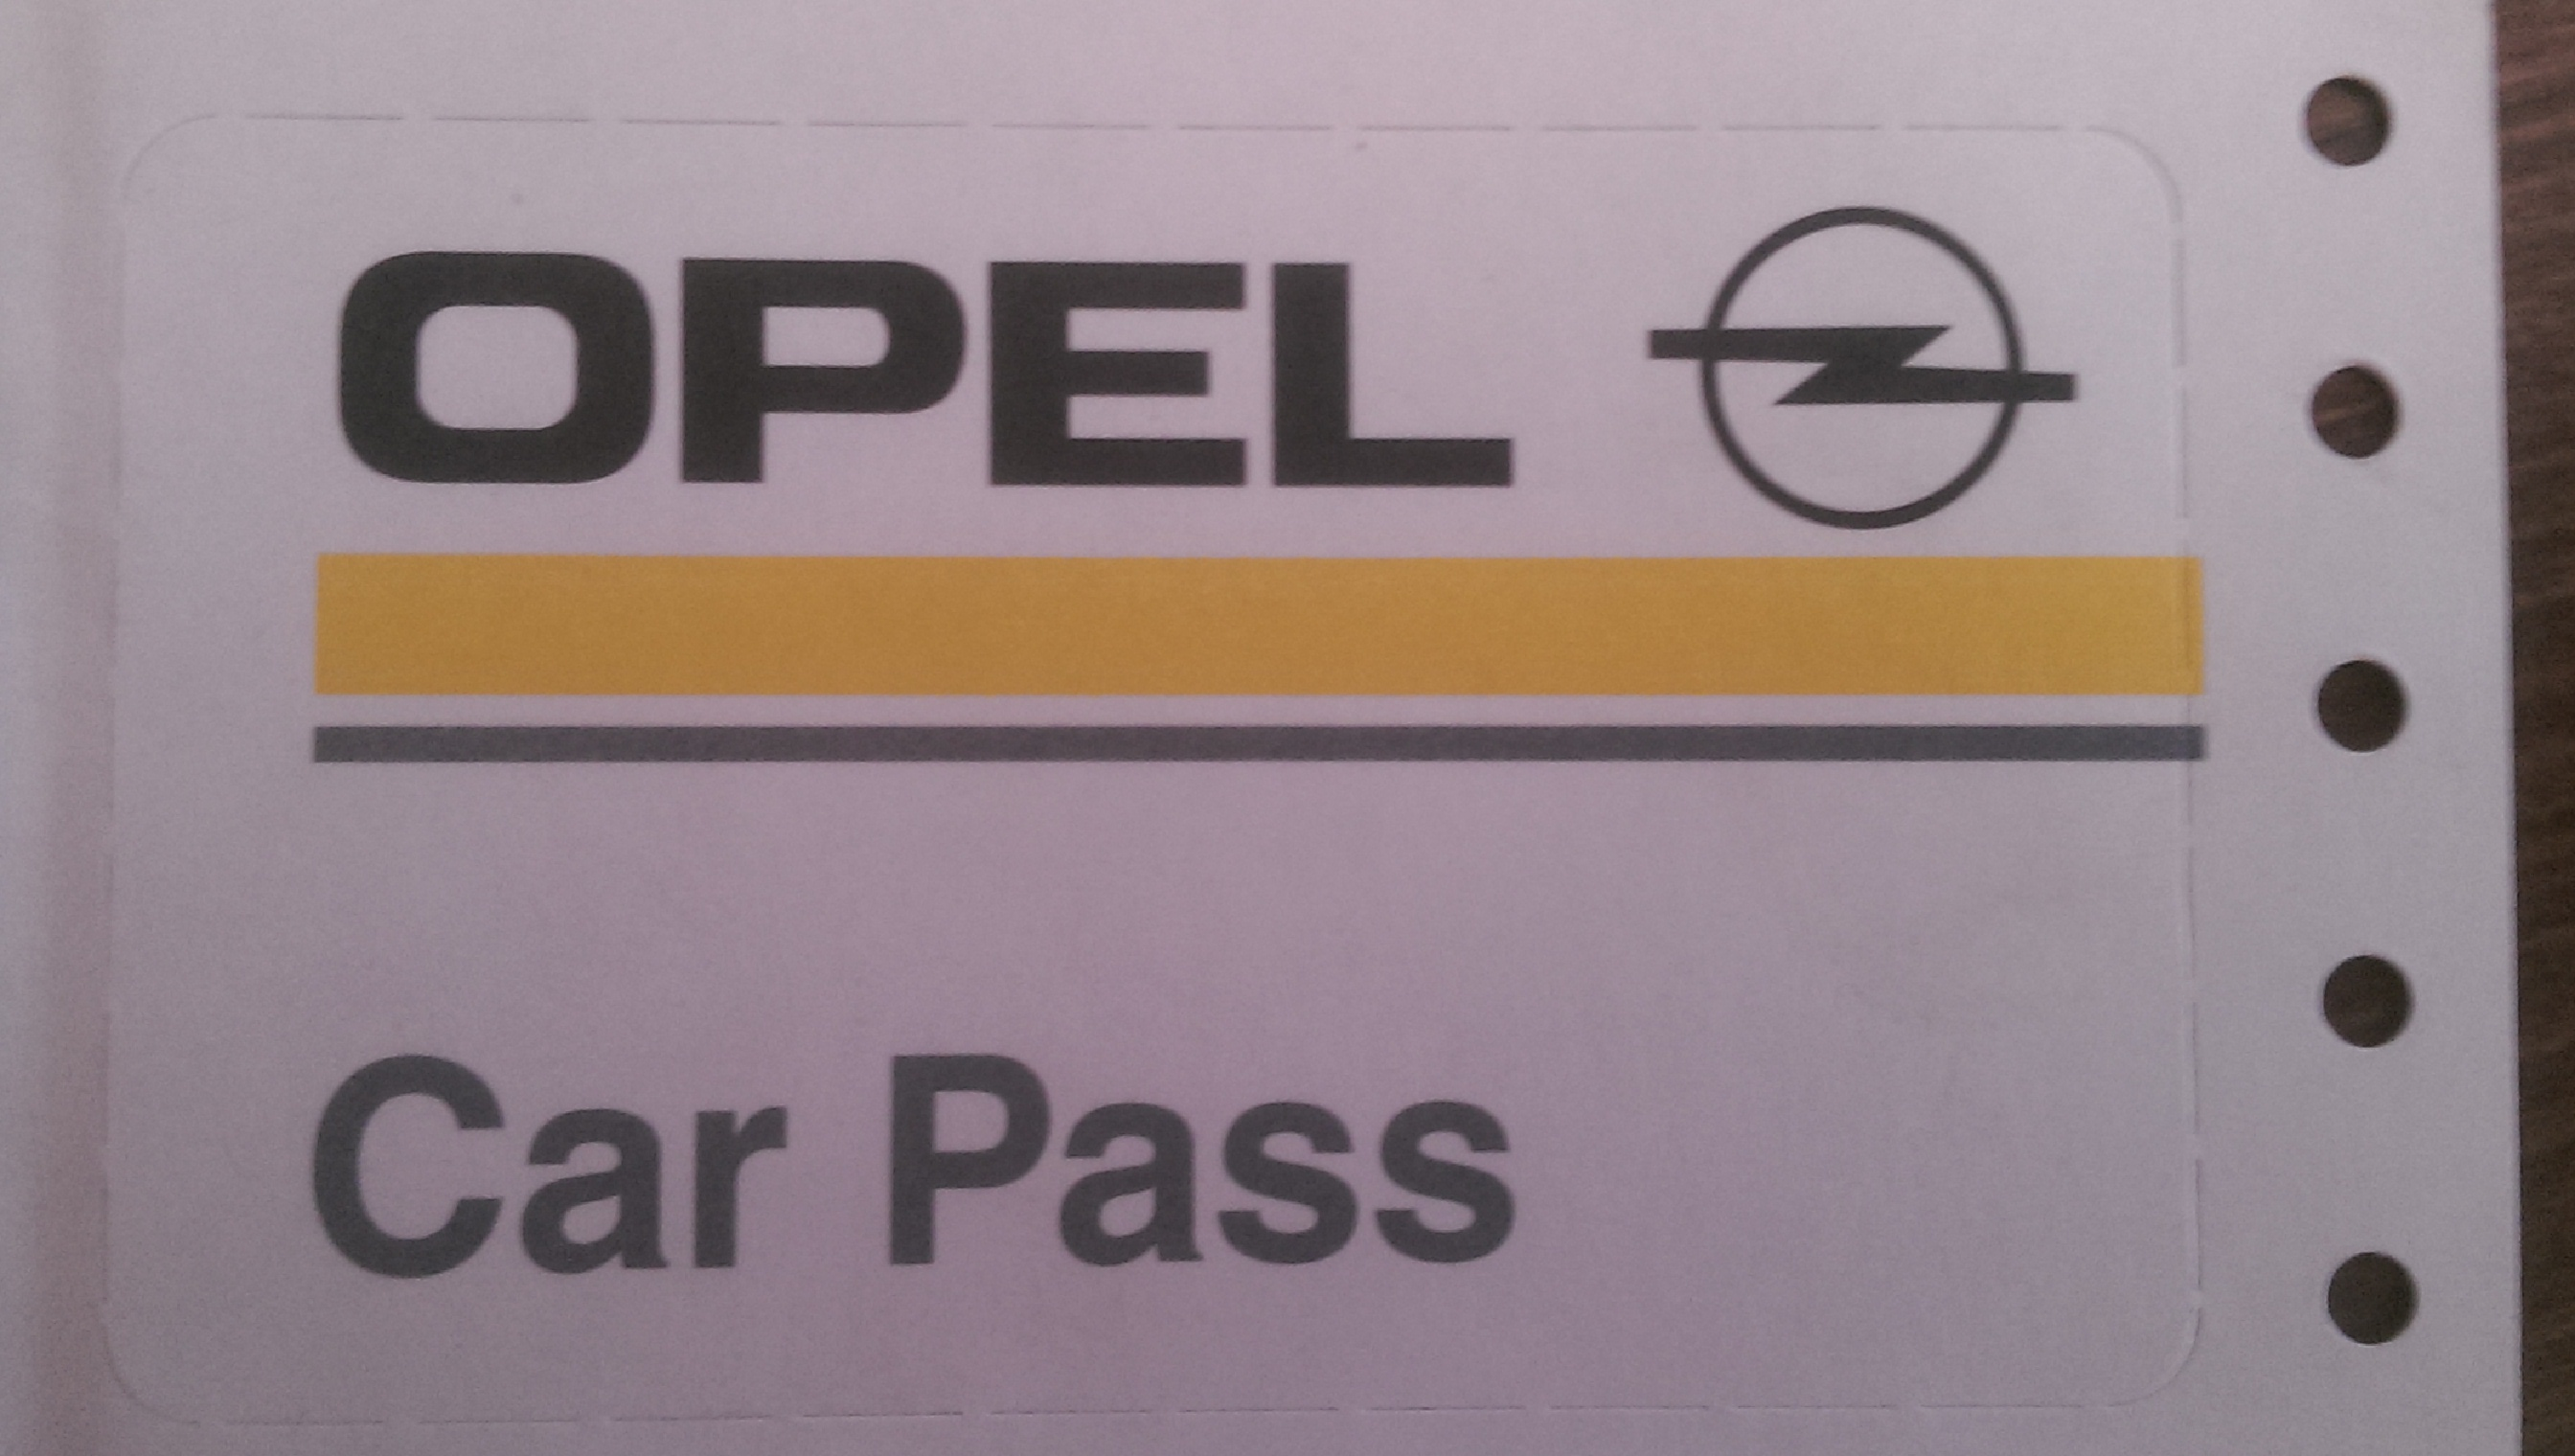 carpass opel